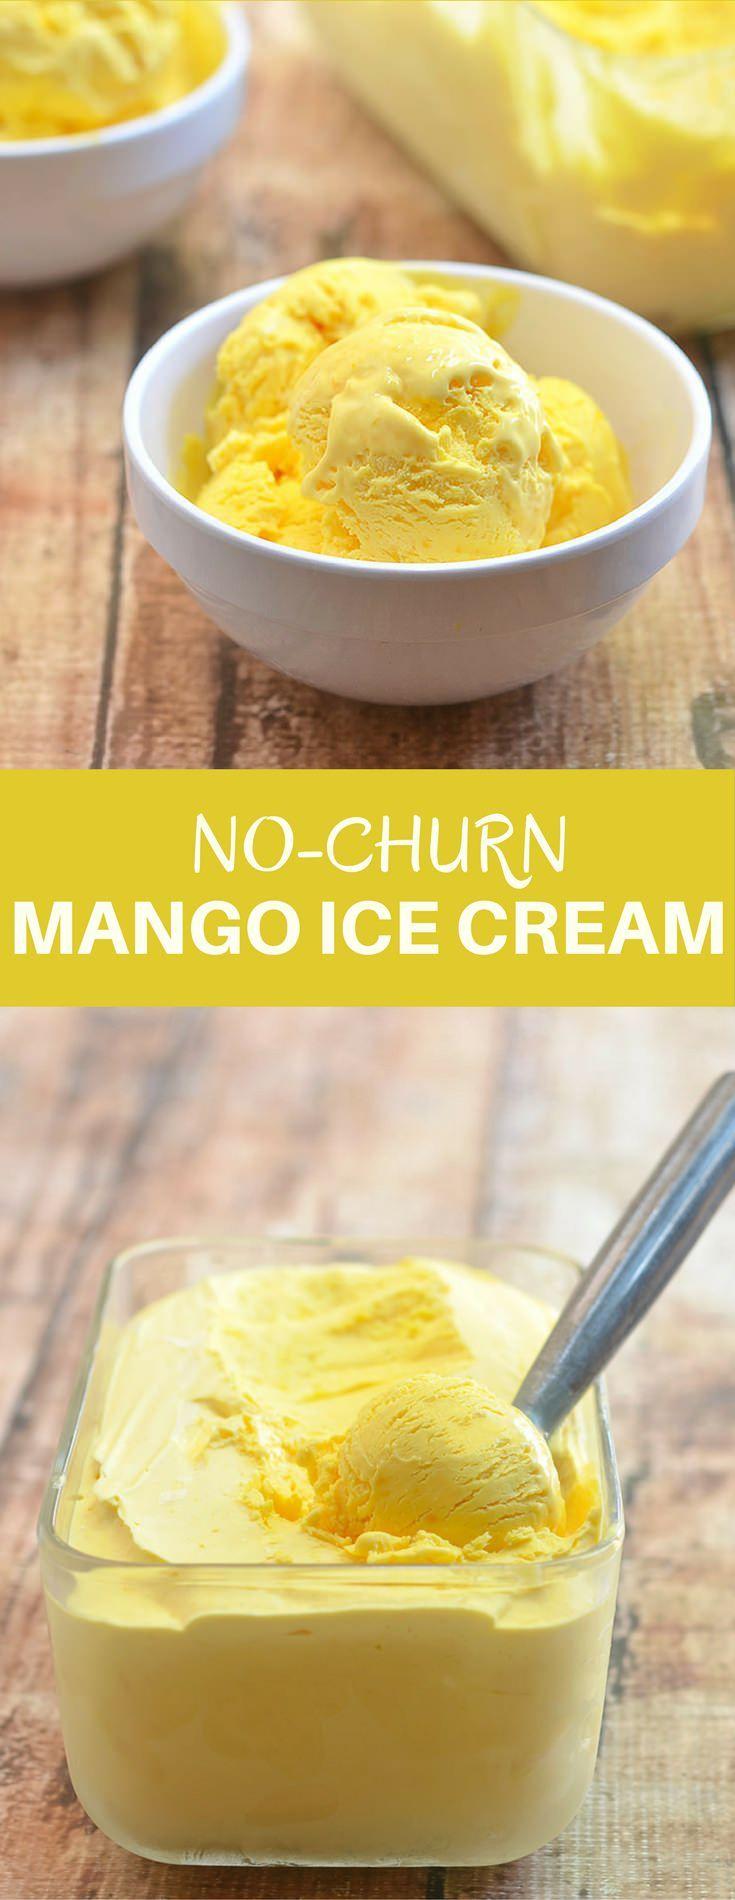 This mango ice cream is all about the fresh flavors of summer! Rich, silky and with intense mango flavor, it will very well be your next sweet addiction. No churn and ice cream maker needed, and only three ingredients! via @lalainespins